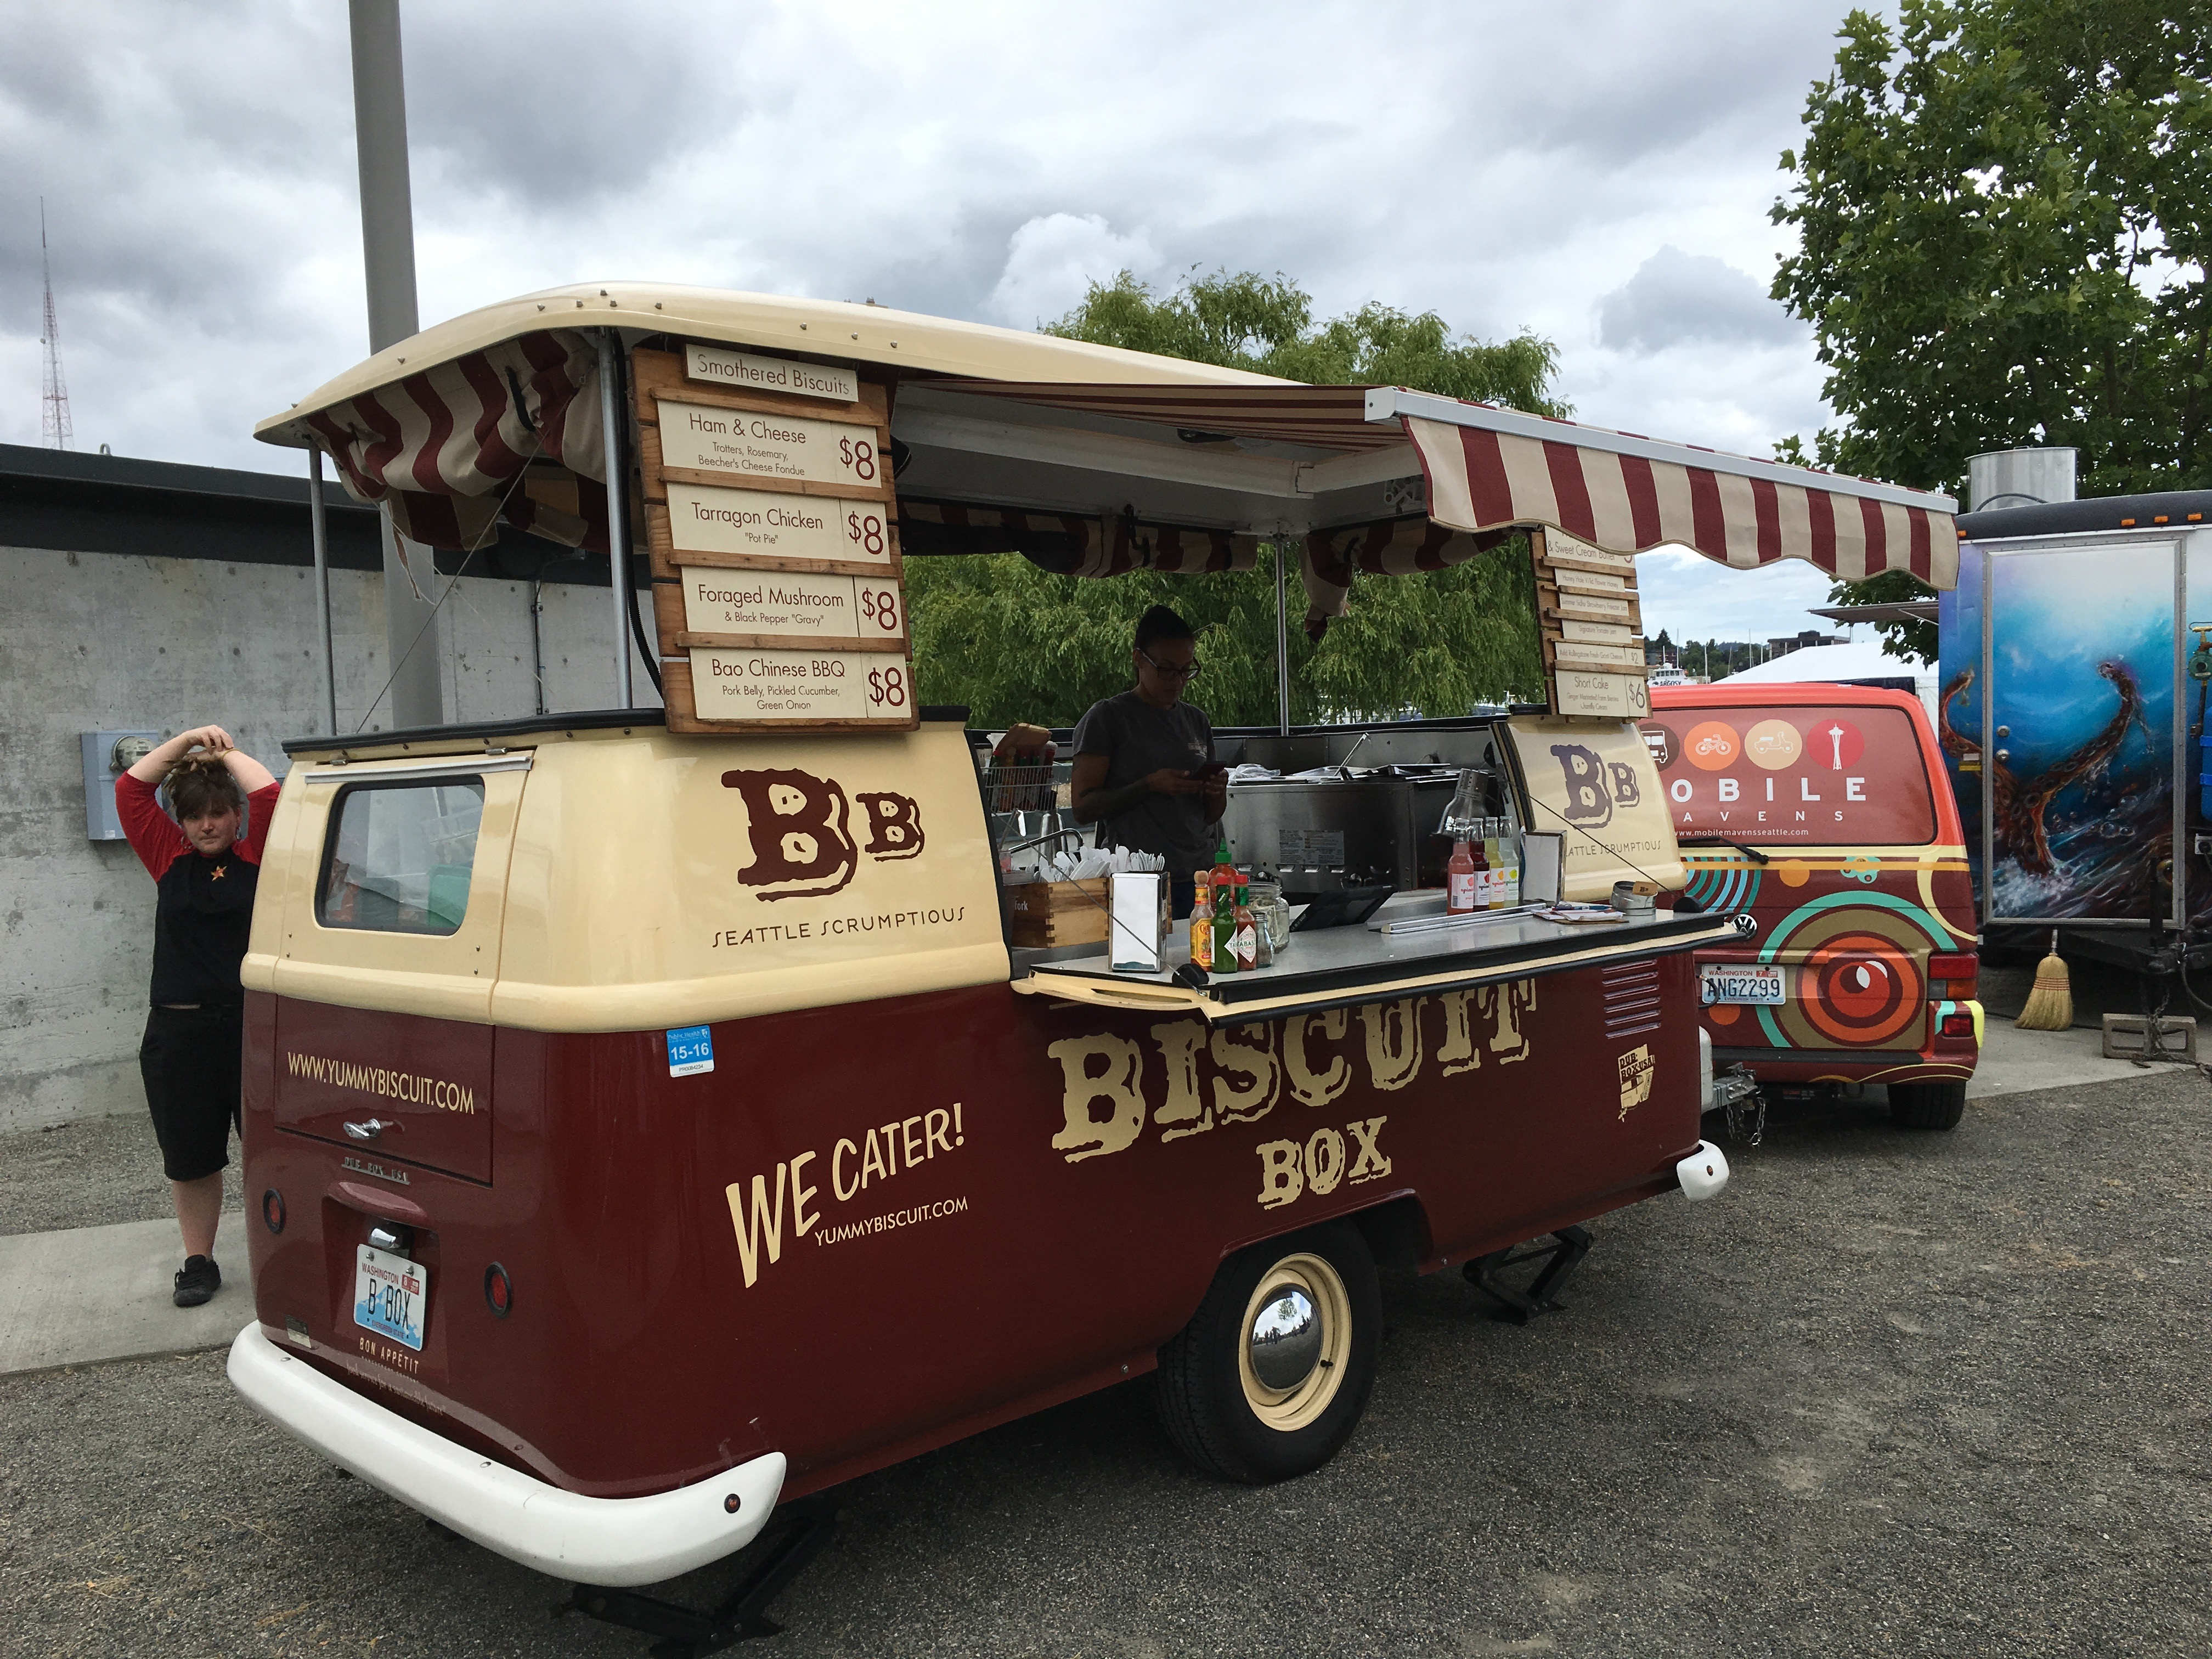 The converted Volkswagen Bus into Biscuit Box at Sierra Nevada Beer Camp Across America Festival in Seattle. (photo by D.J. Paul)